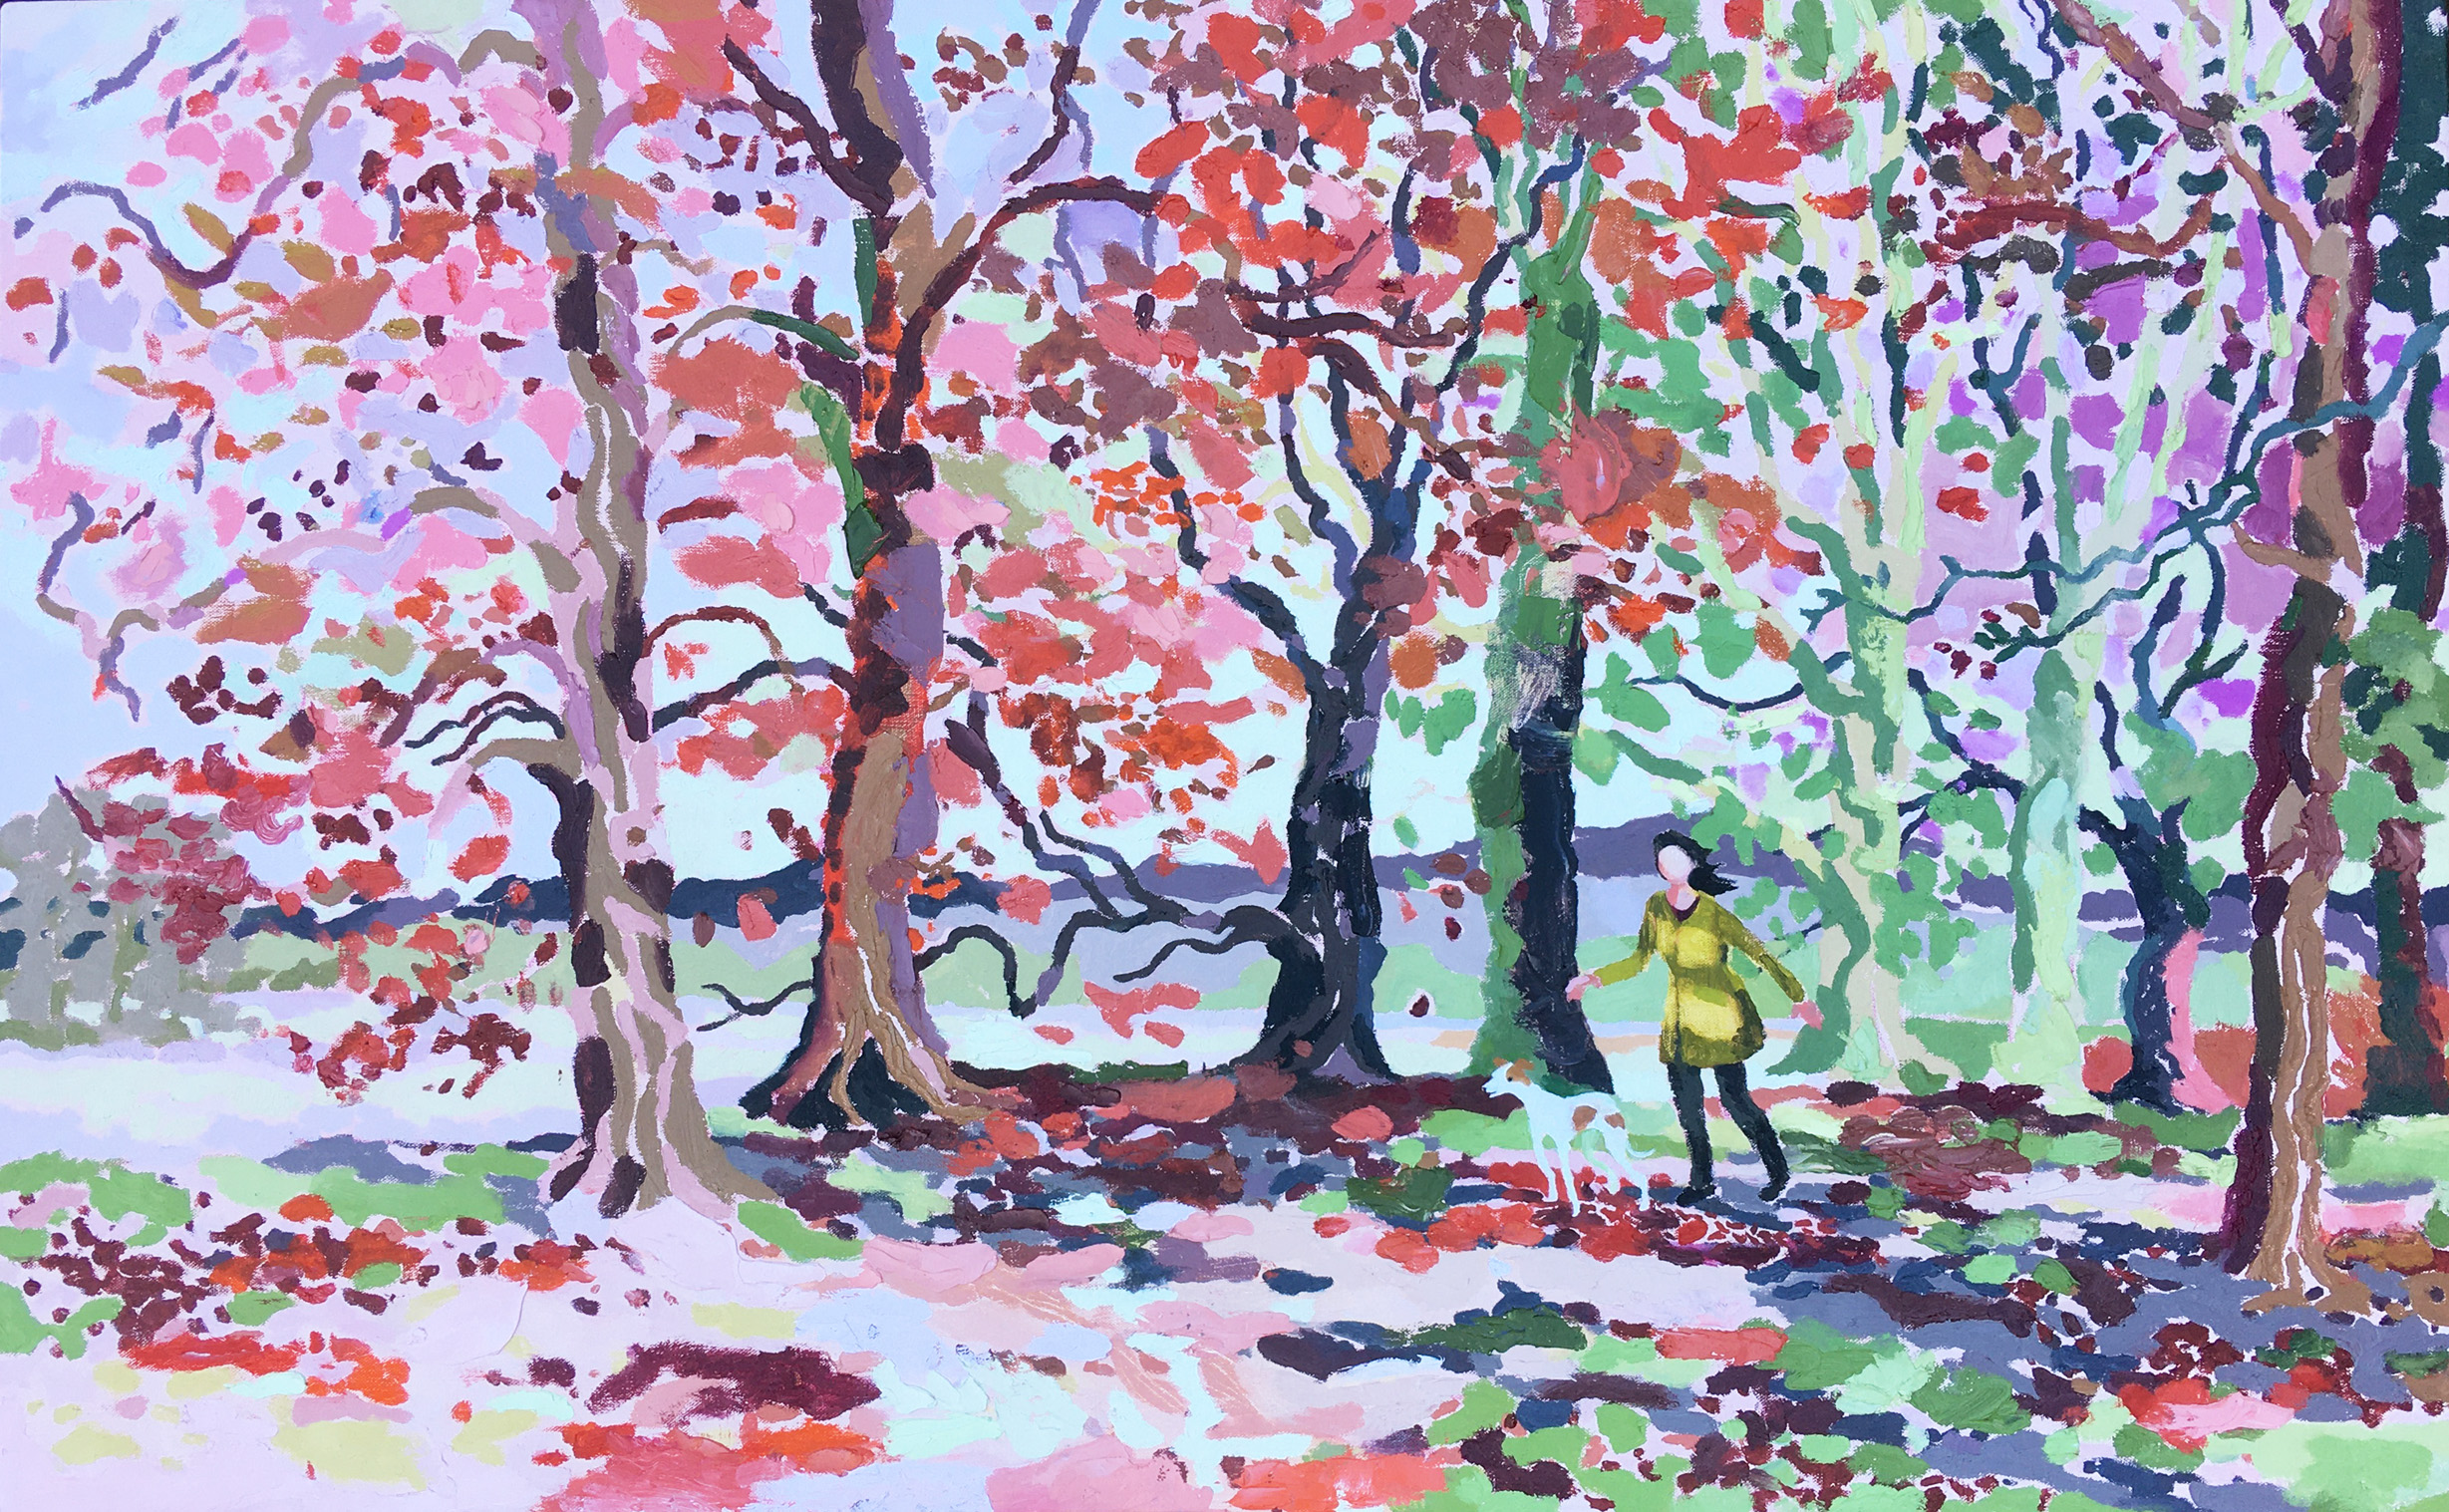 Autumn Walk, Reds and Greens. Oil on canvas. 70 x 113 cm